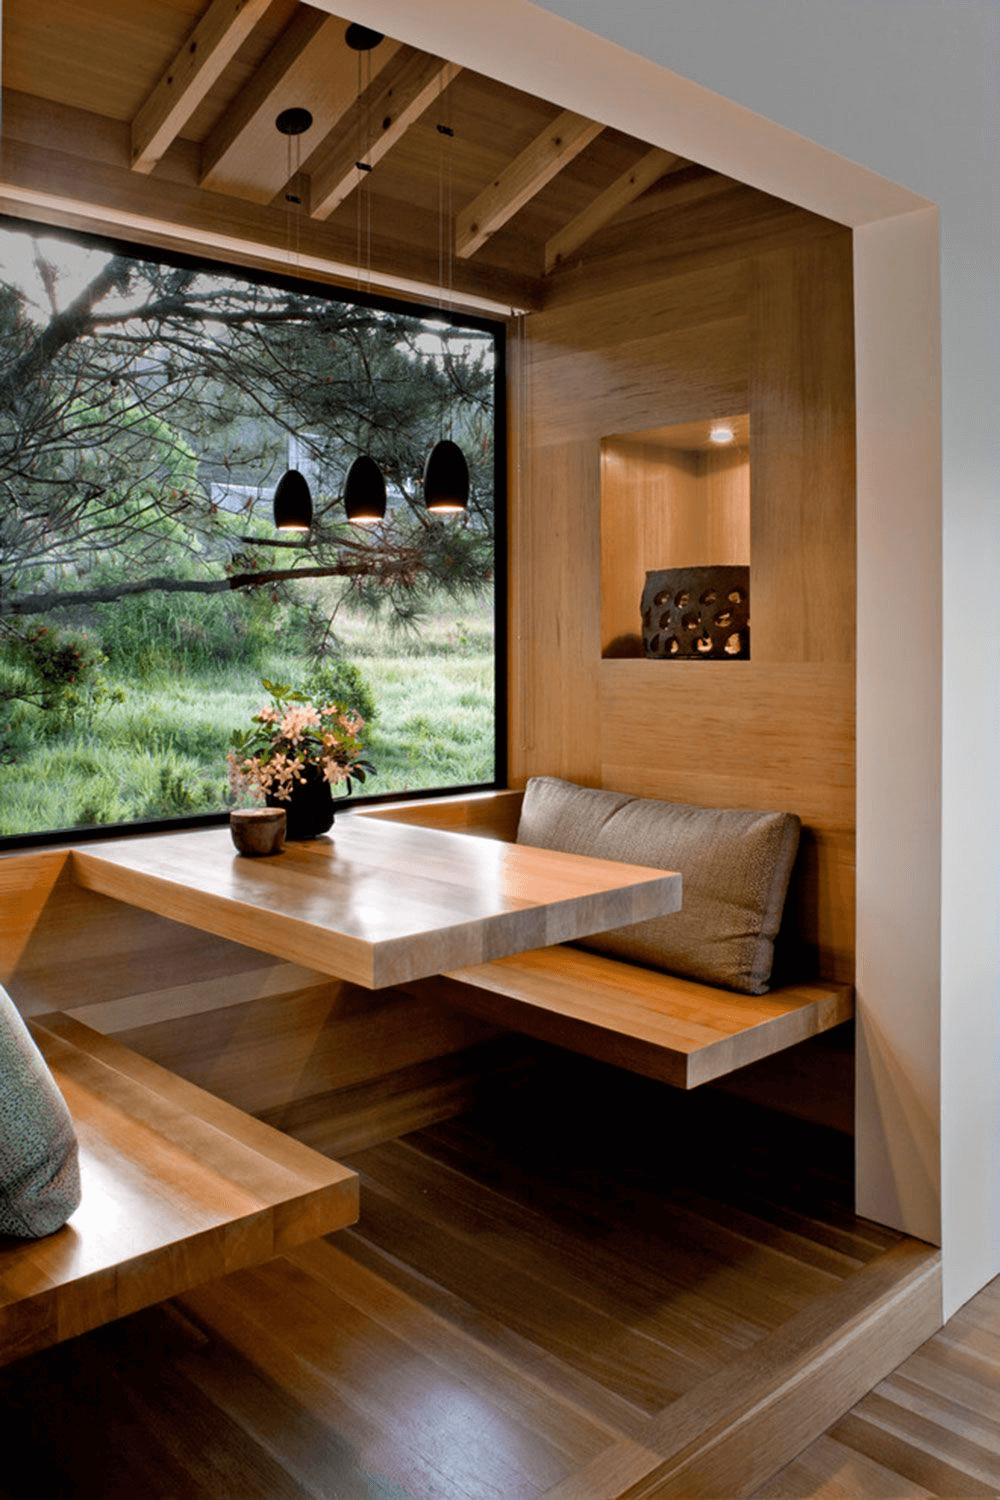 Japanese style nook ideas for small kitchen   Haus ...